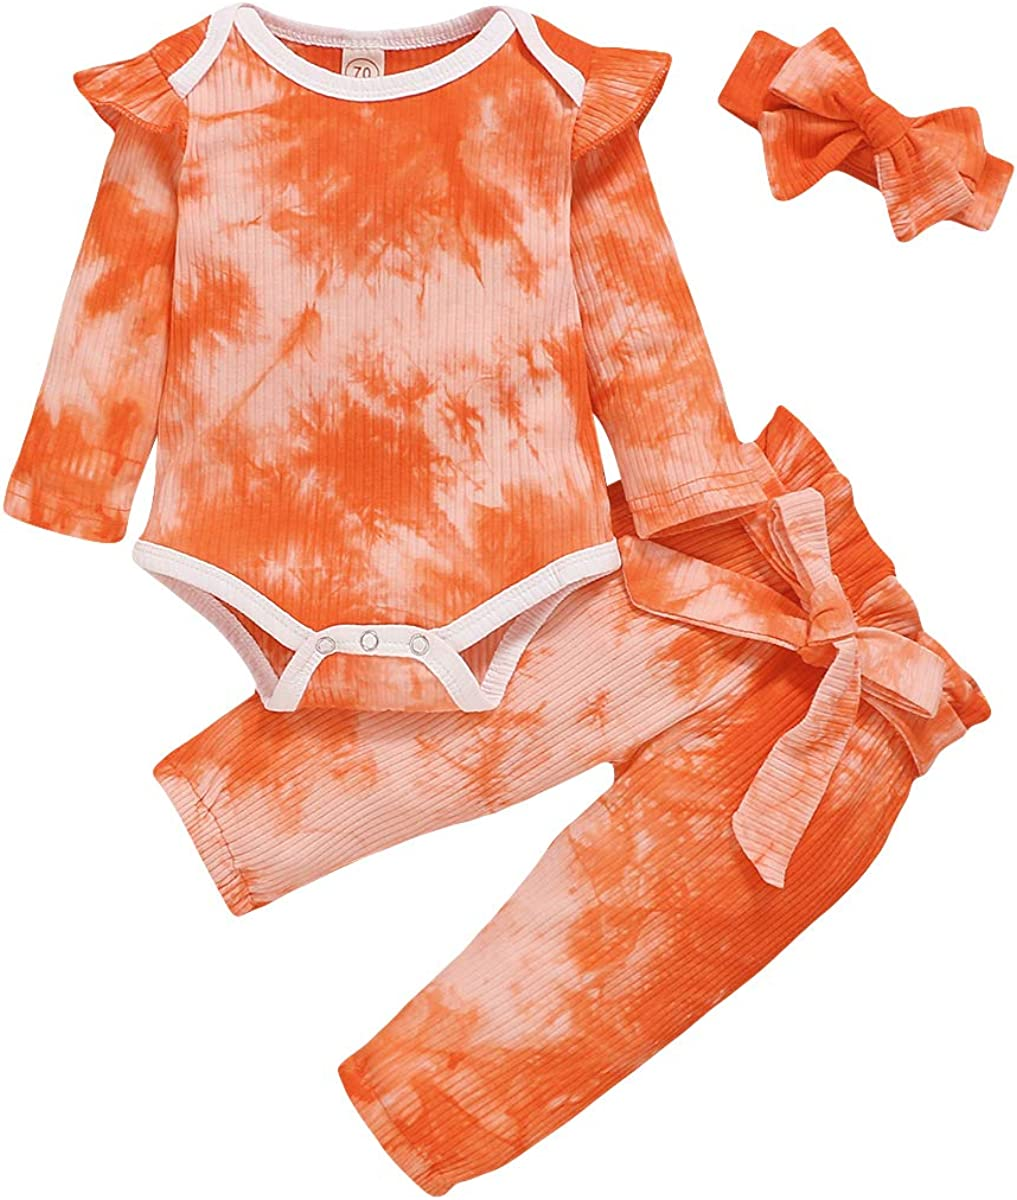 Argorgeous Newborn Baby Girl Clothes Tie Dye Long Sleeve Romper Pants Headband Toddler Fall Winter Outfits